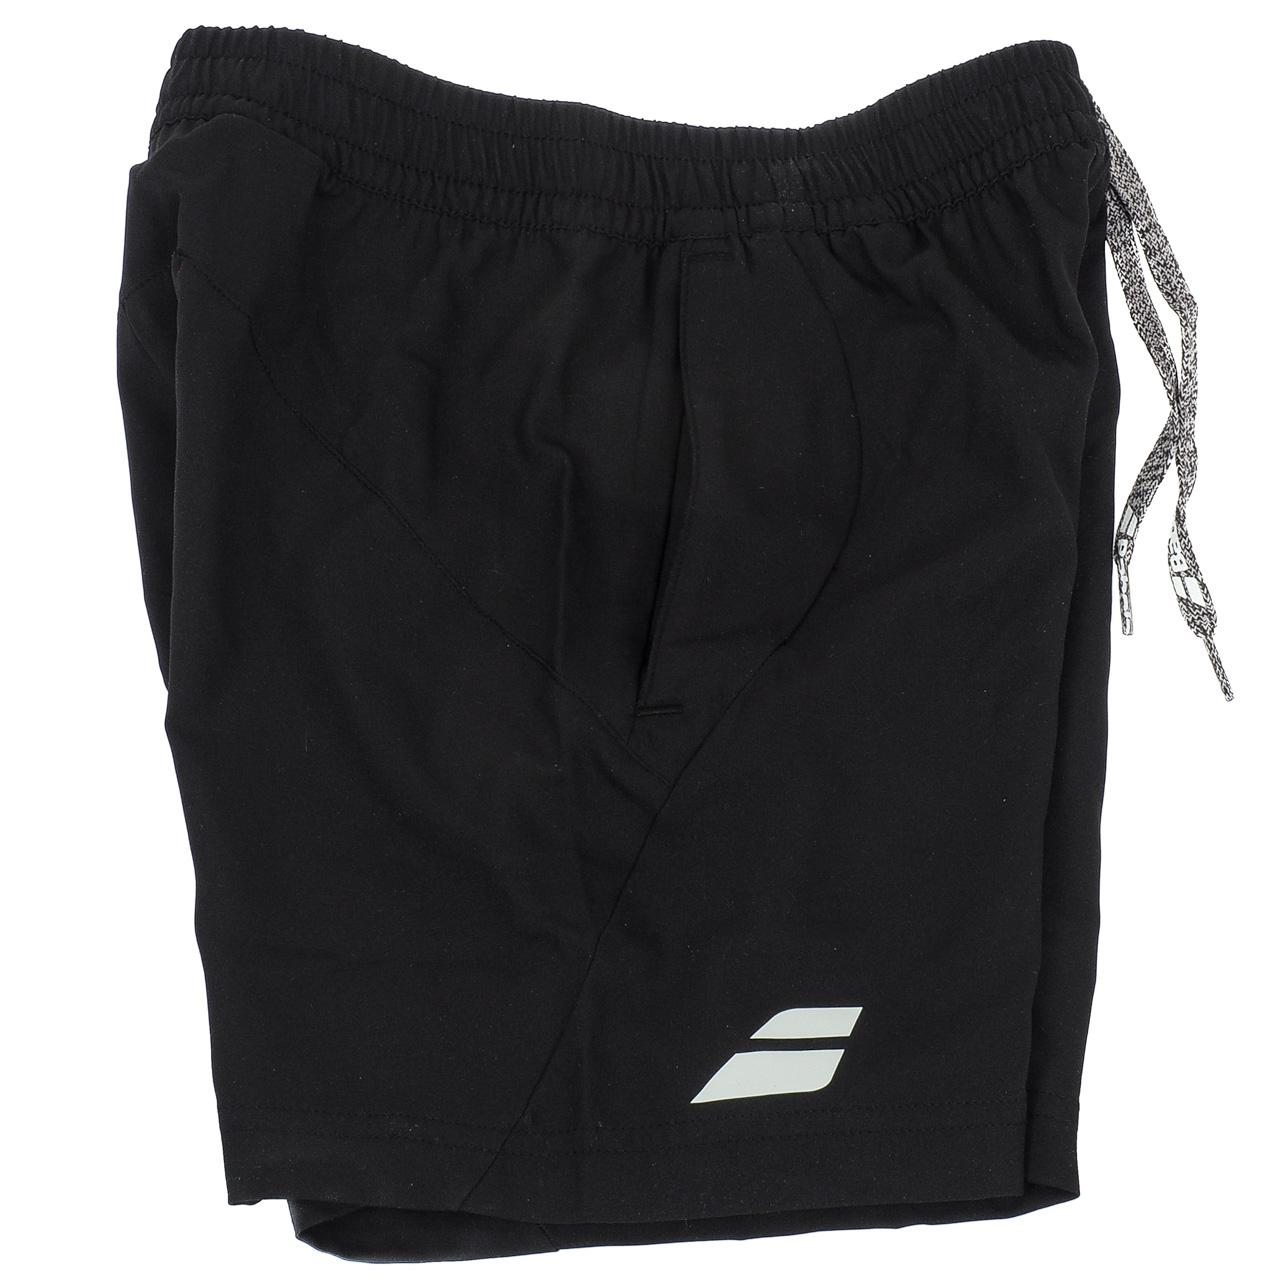 Short-de-tennis-Babolat-Short-core-black-kid-Blanc-70503-Neuf miniature 2